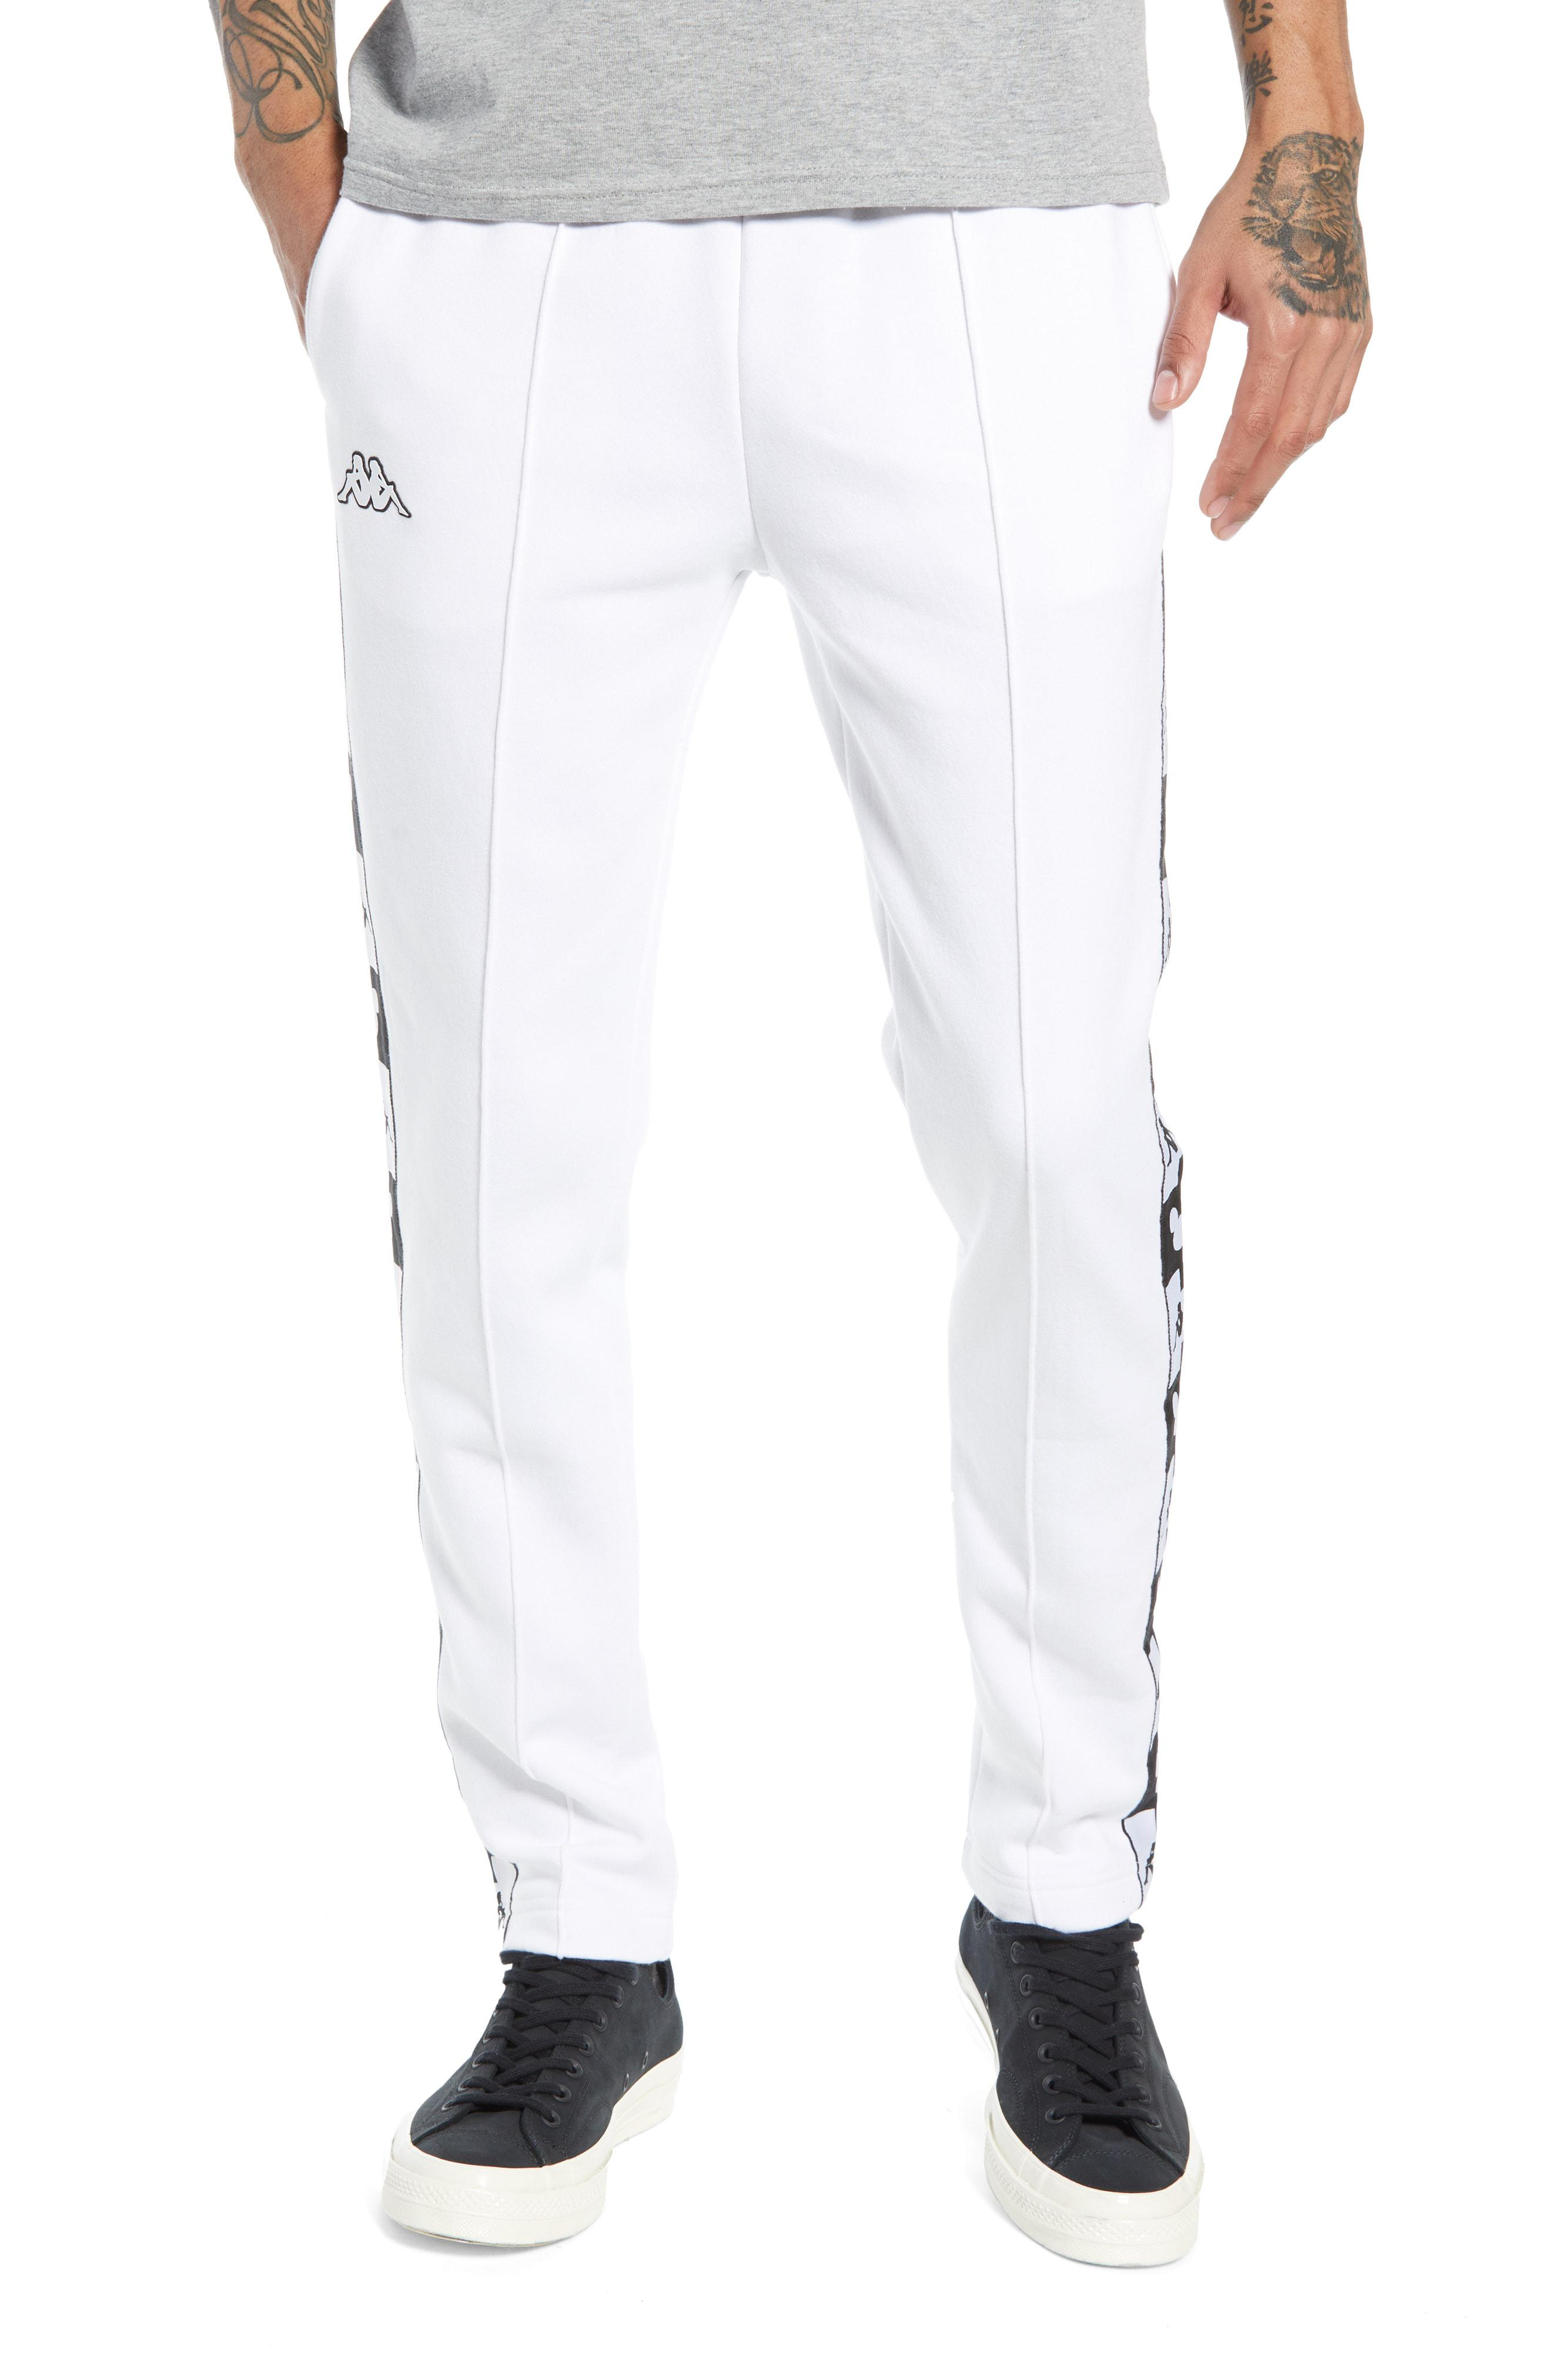 8702856f Kappa X Disney Authentic Alphonso Slim Fit Track Pants in White for ...